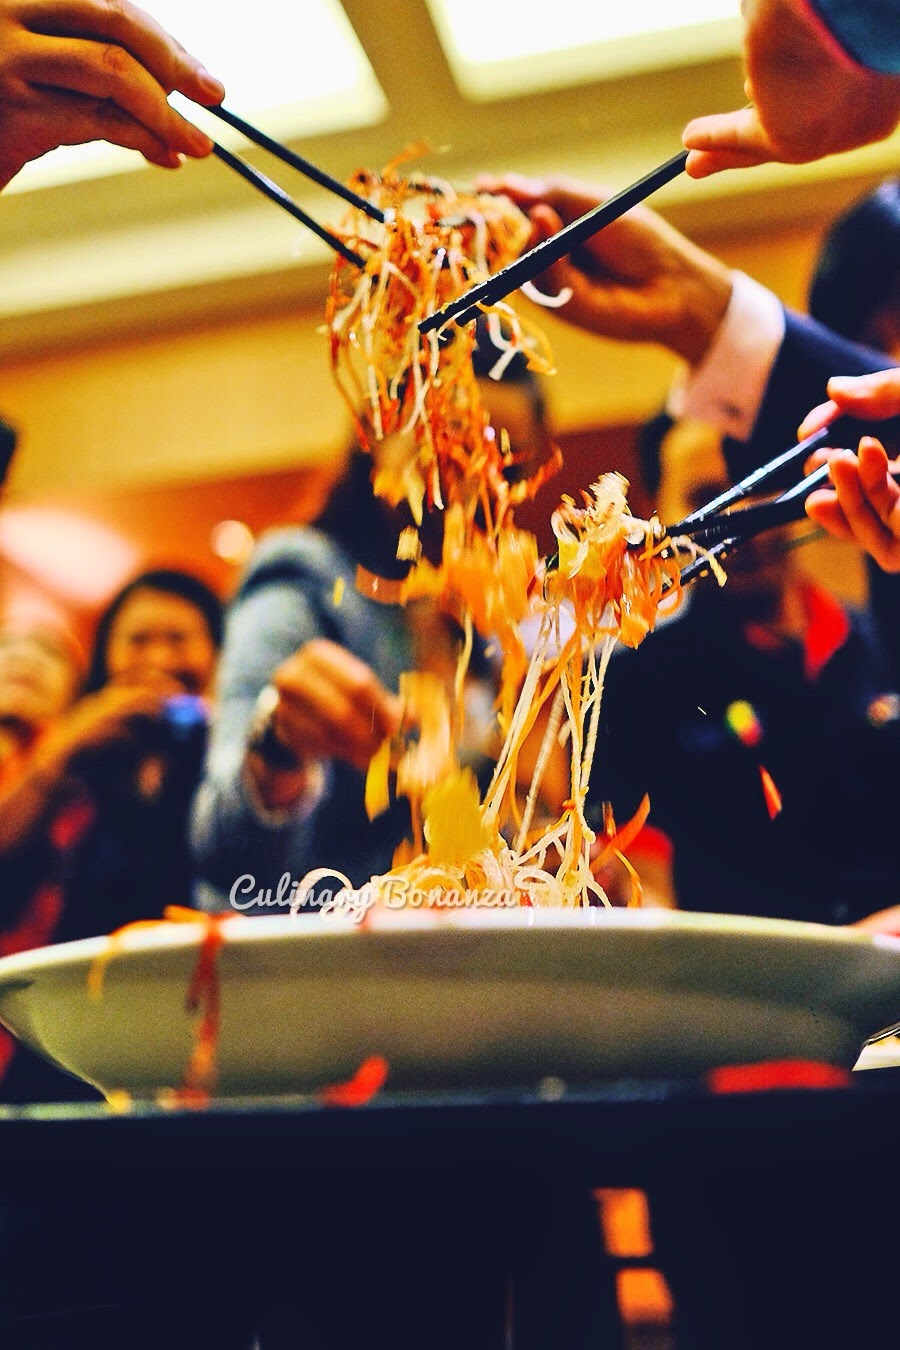 Tossing Yee Sang (www.culinarybonanza.com)